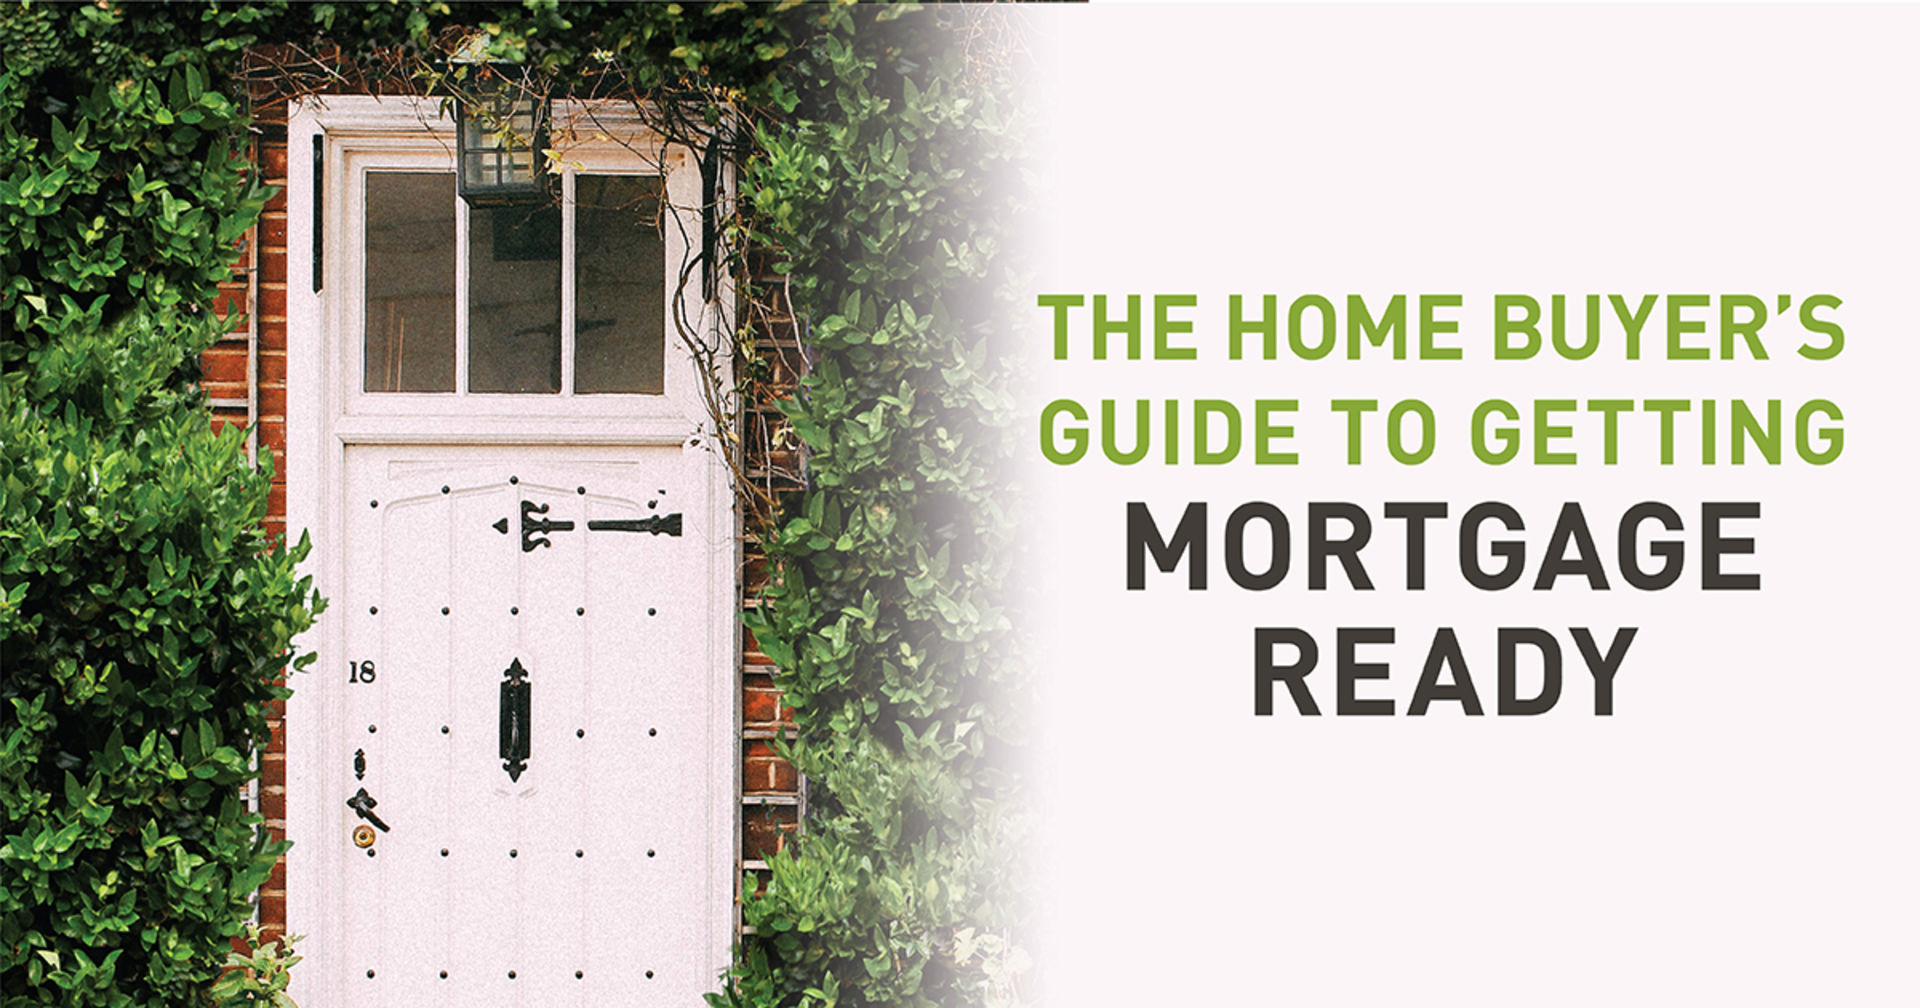 The Home Buyer's Guide to Getting Mortgage Ready